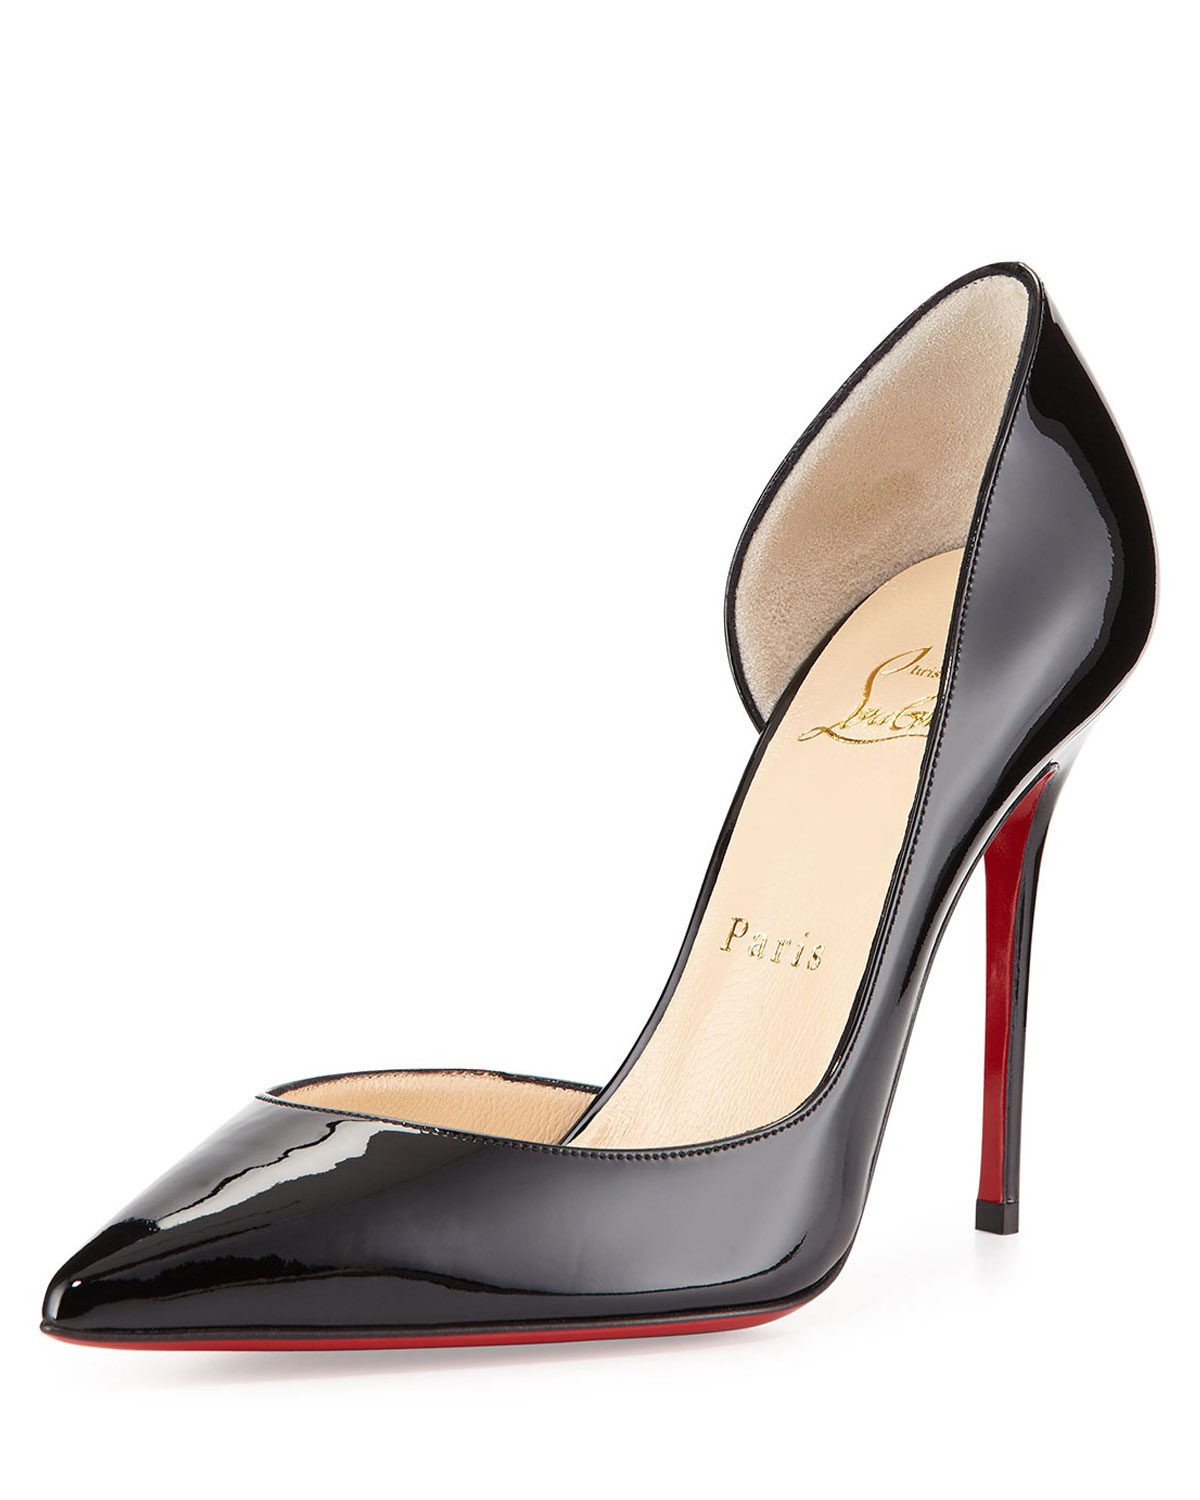 751acd5f61fc Christian Louboutin Iriza Patent Half-d Orsay 100mm Red Sole Pump ...